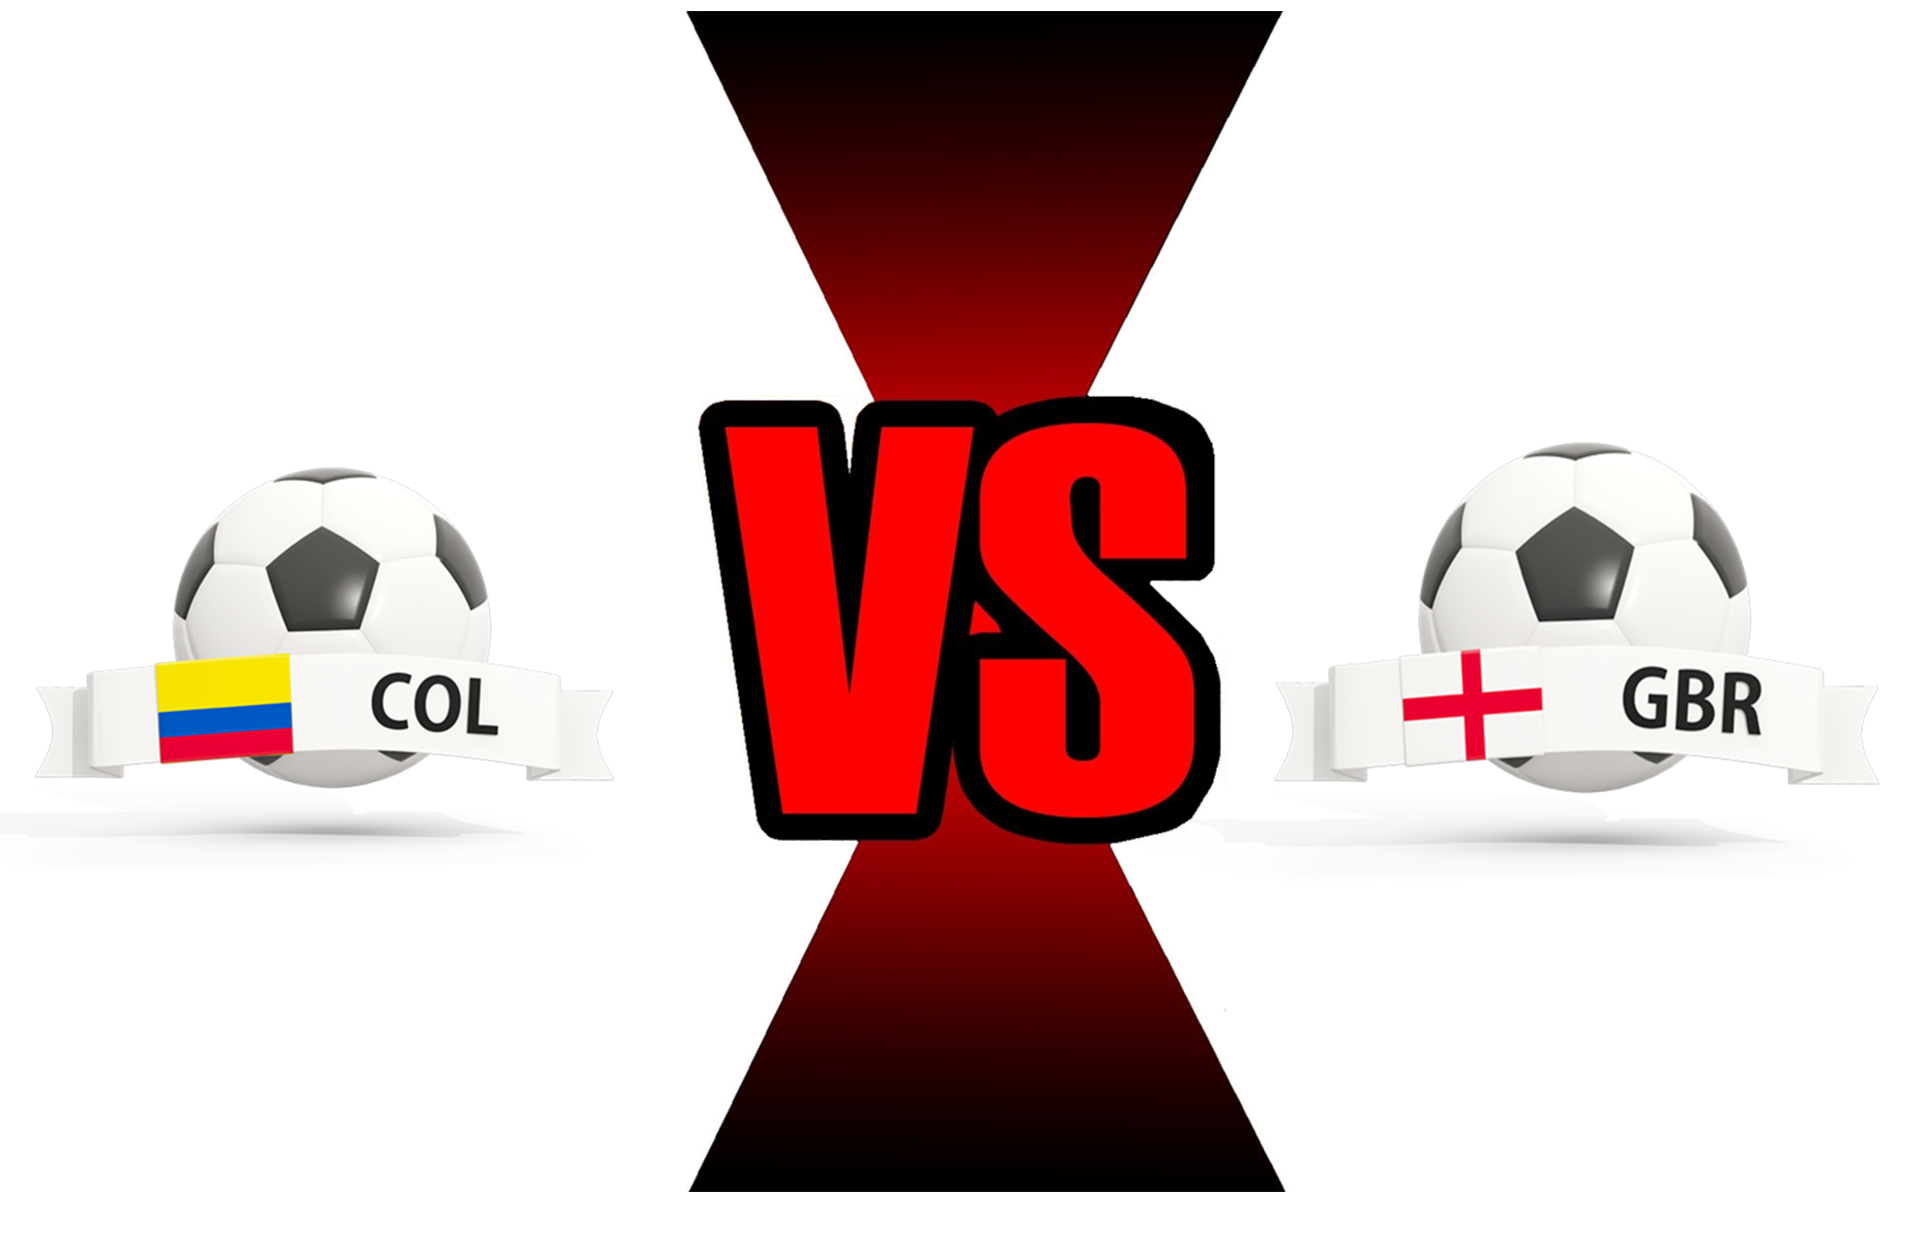 FIFA World Cup 2018 Colombia VS England PNG Image SVG Clip arts